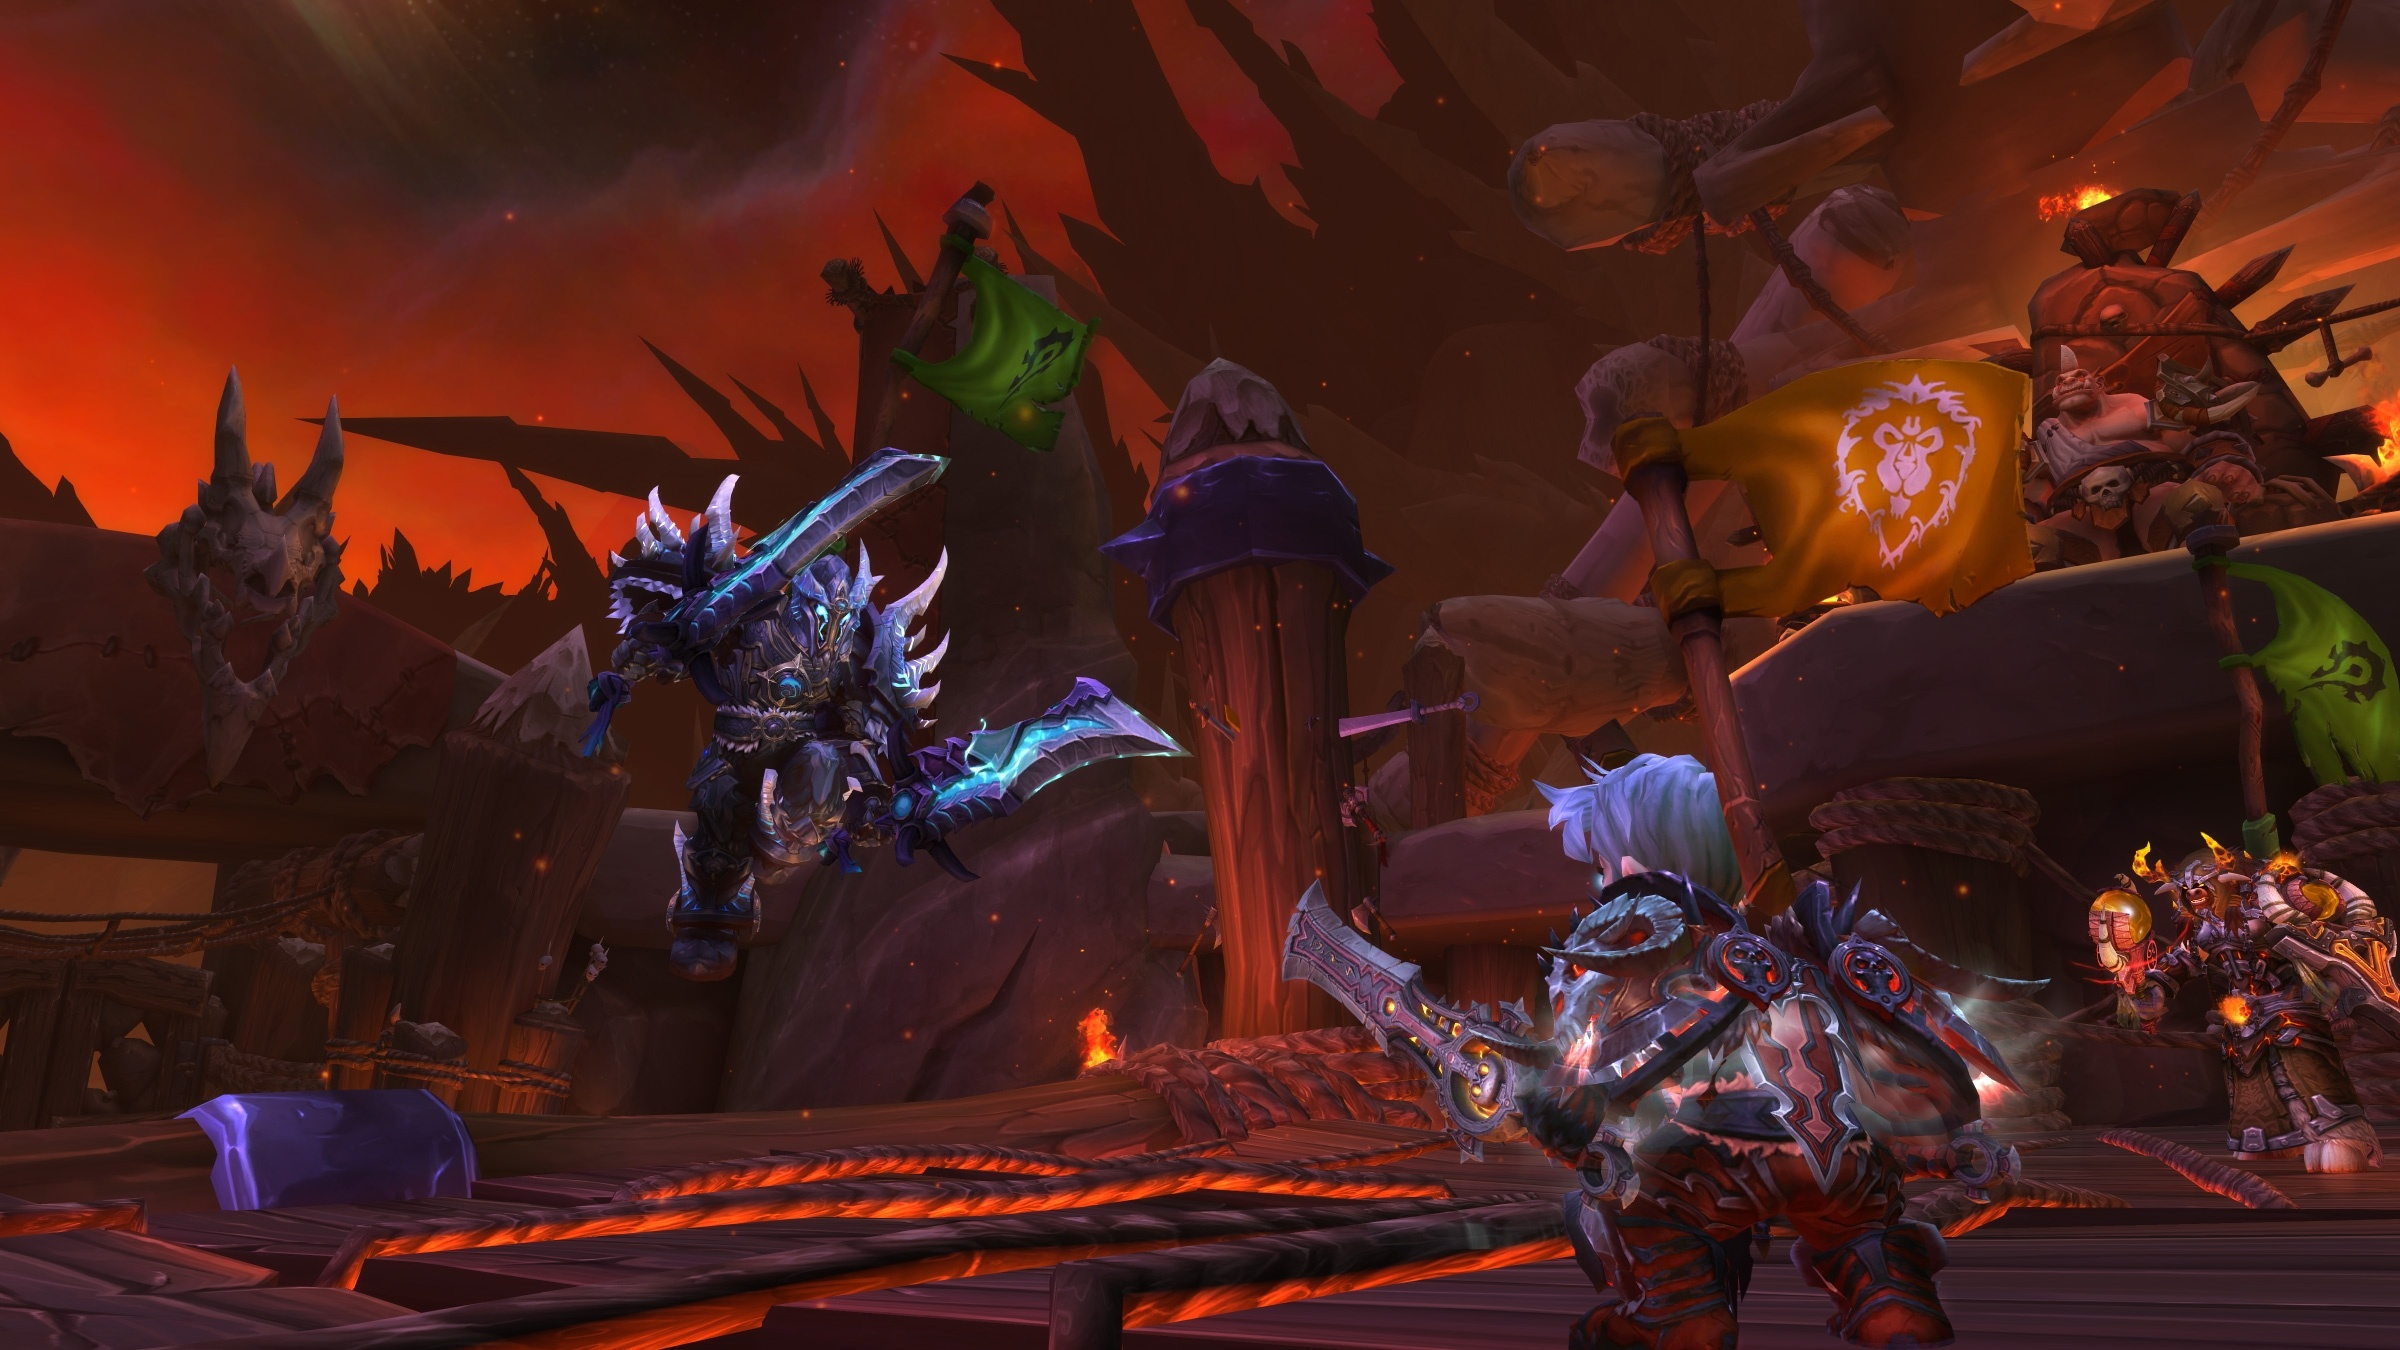 Unholy Death Knight Pvp Guide Shadowlands 9 0 2 Guides Wowhead